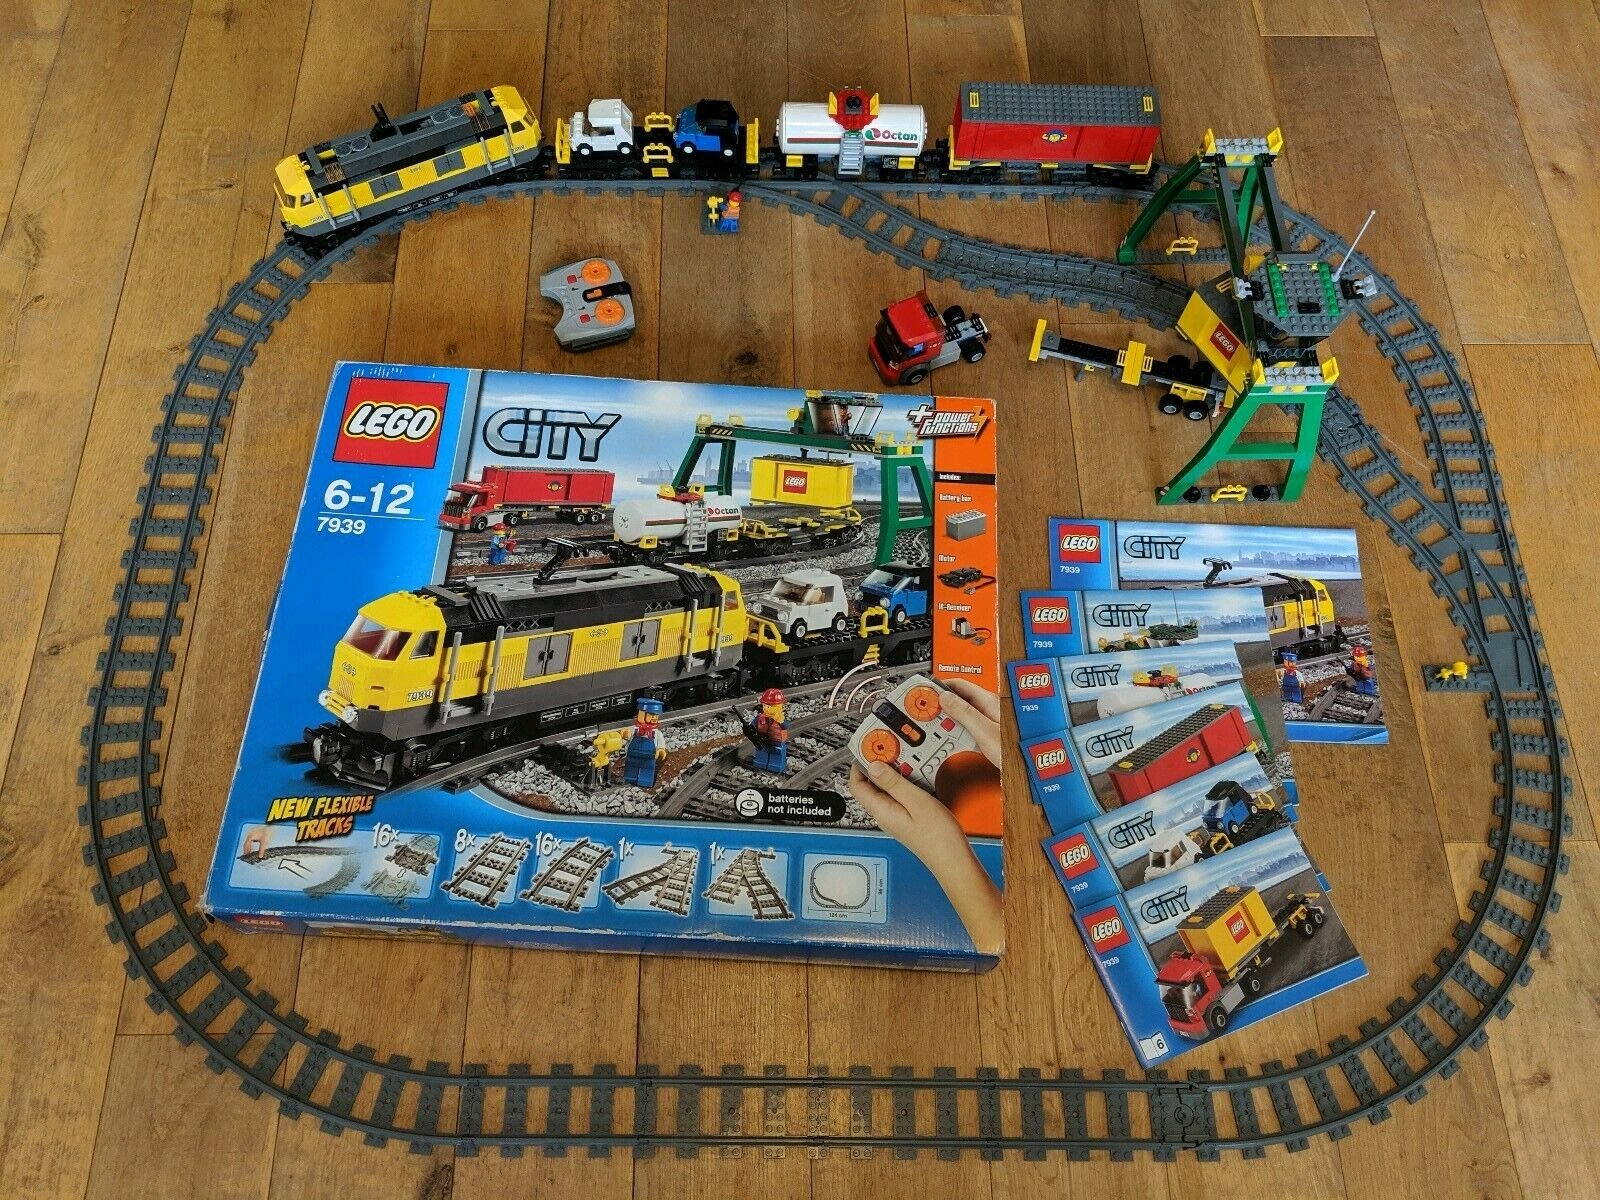 Very  Rare Lego City Motorised voiturego Train Set 7939  100% Complete With Box VGC  confortable